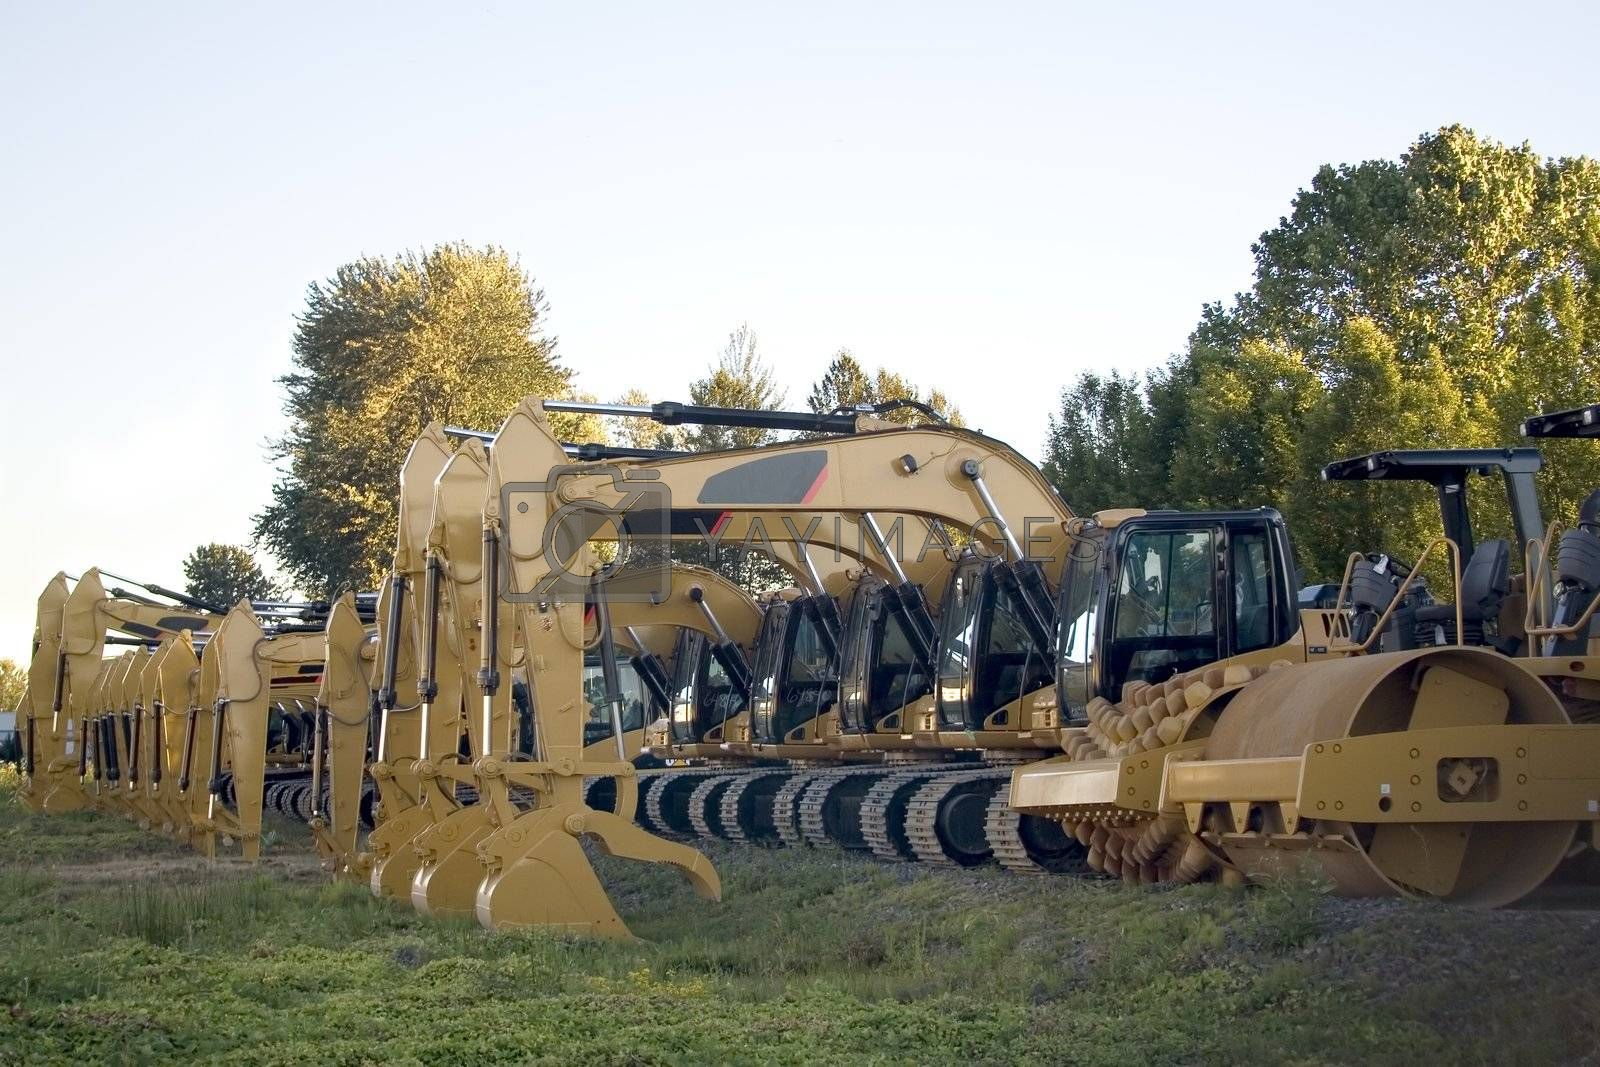 New steamrollers, bulldozers and front-end loaders in a row on the sales lot.